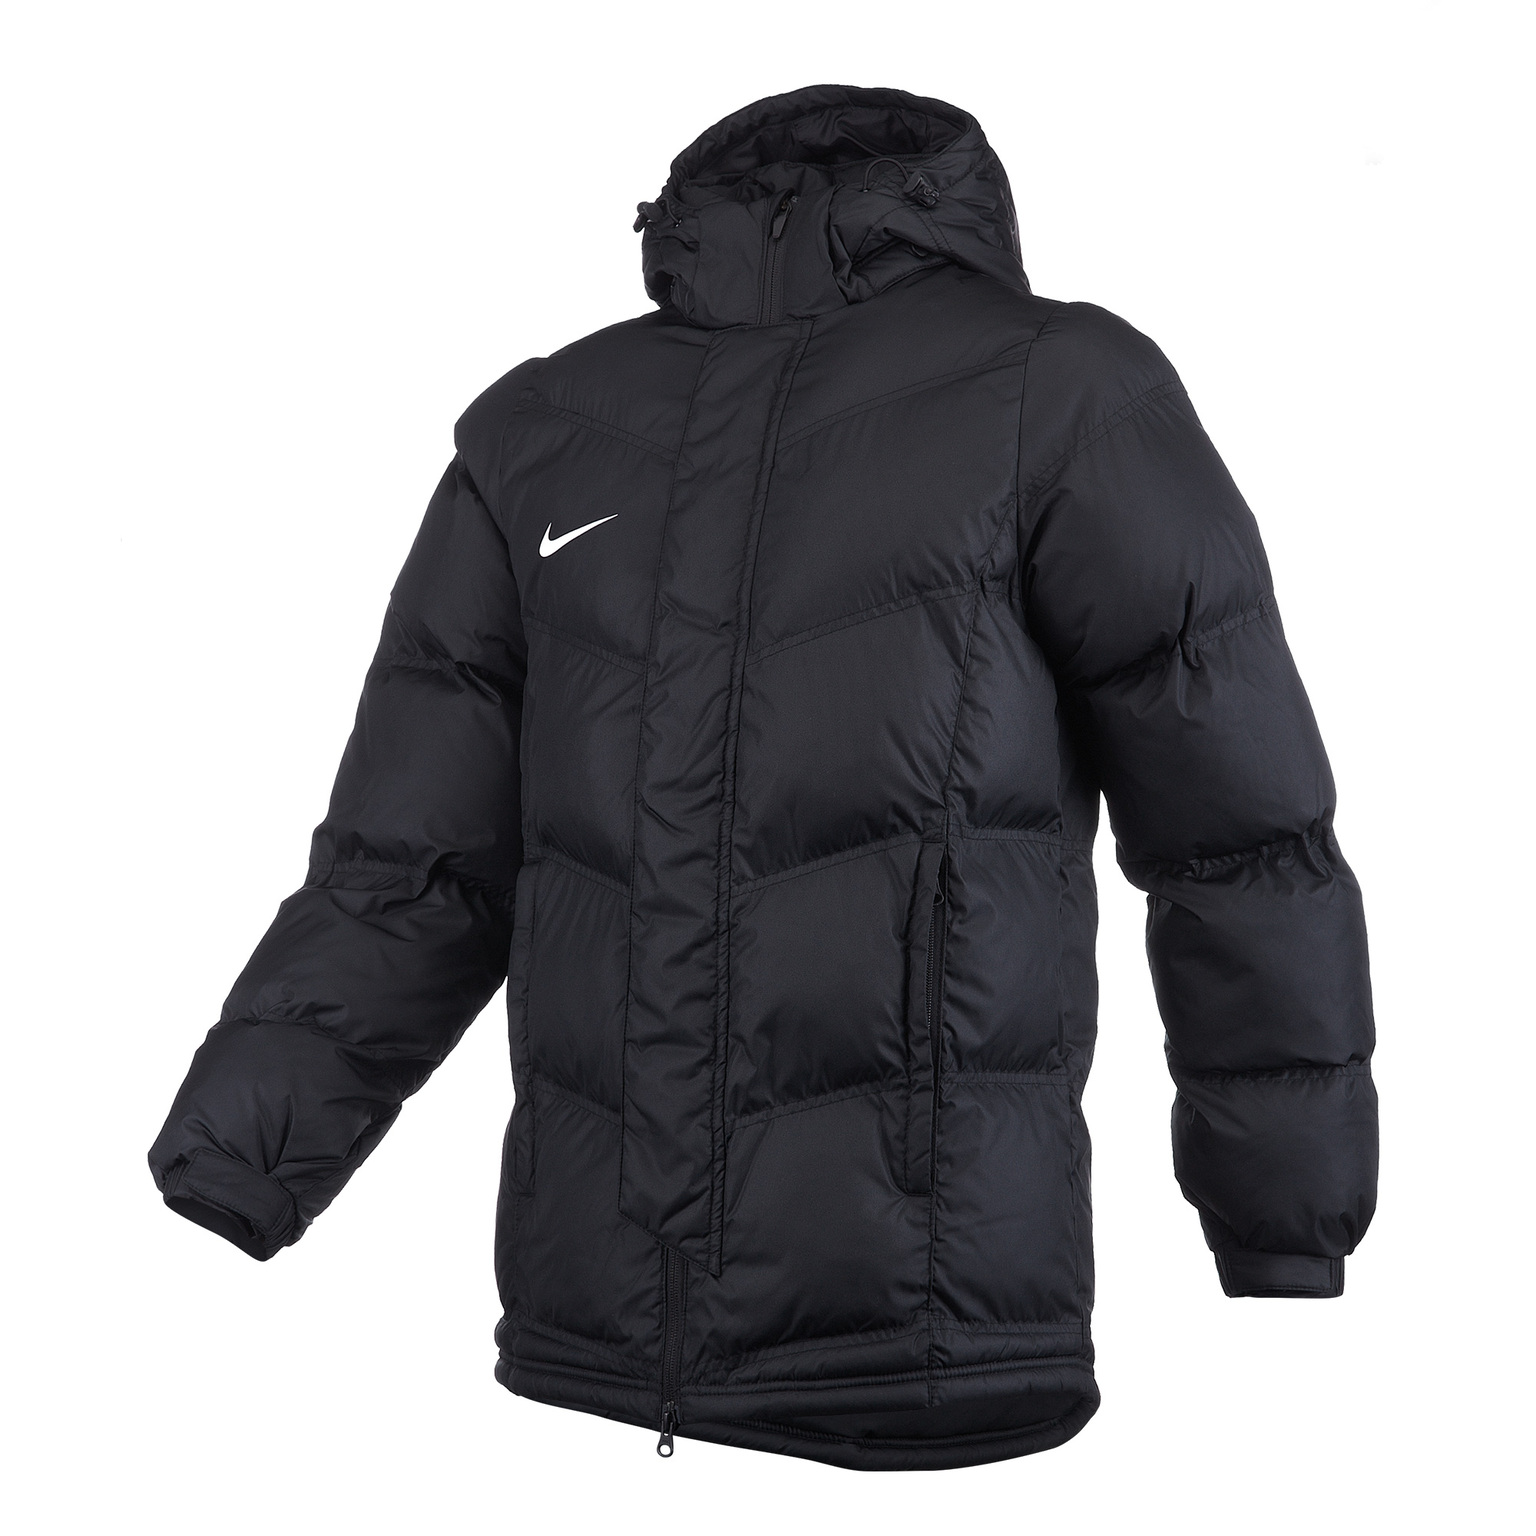 Куртка Nike Team Winter JKT 645484-010 nike кофта ent auth n98 trk jkt